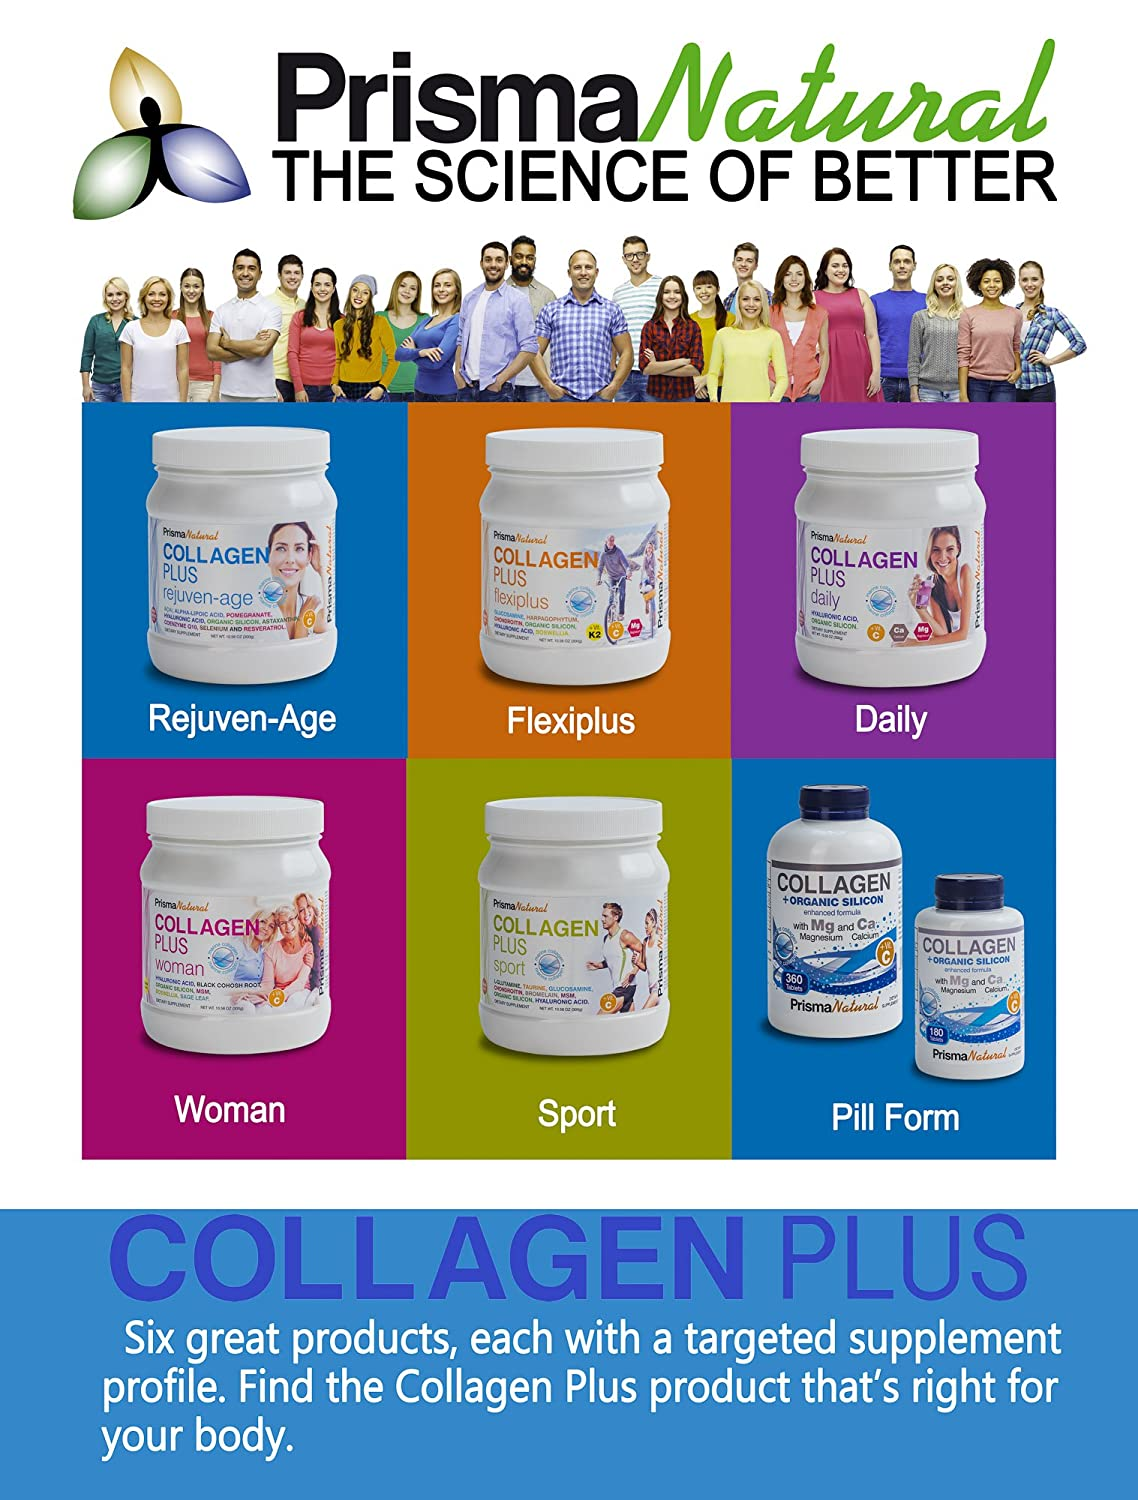 Amazon.com: Prisma Natural Daily Collagen +Organic Silicon Supplement, 180 Tablets, Type I Marine-Based Hydrolyzed Peptides with Magnesium, Hyaluronic Acid, ...